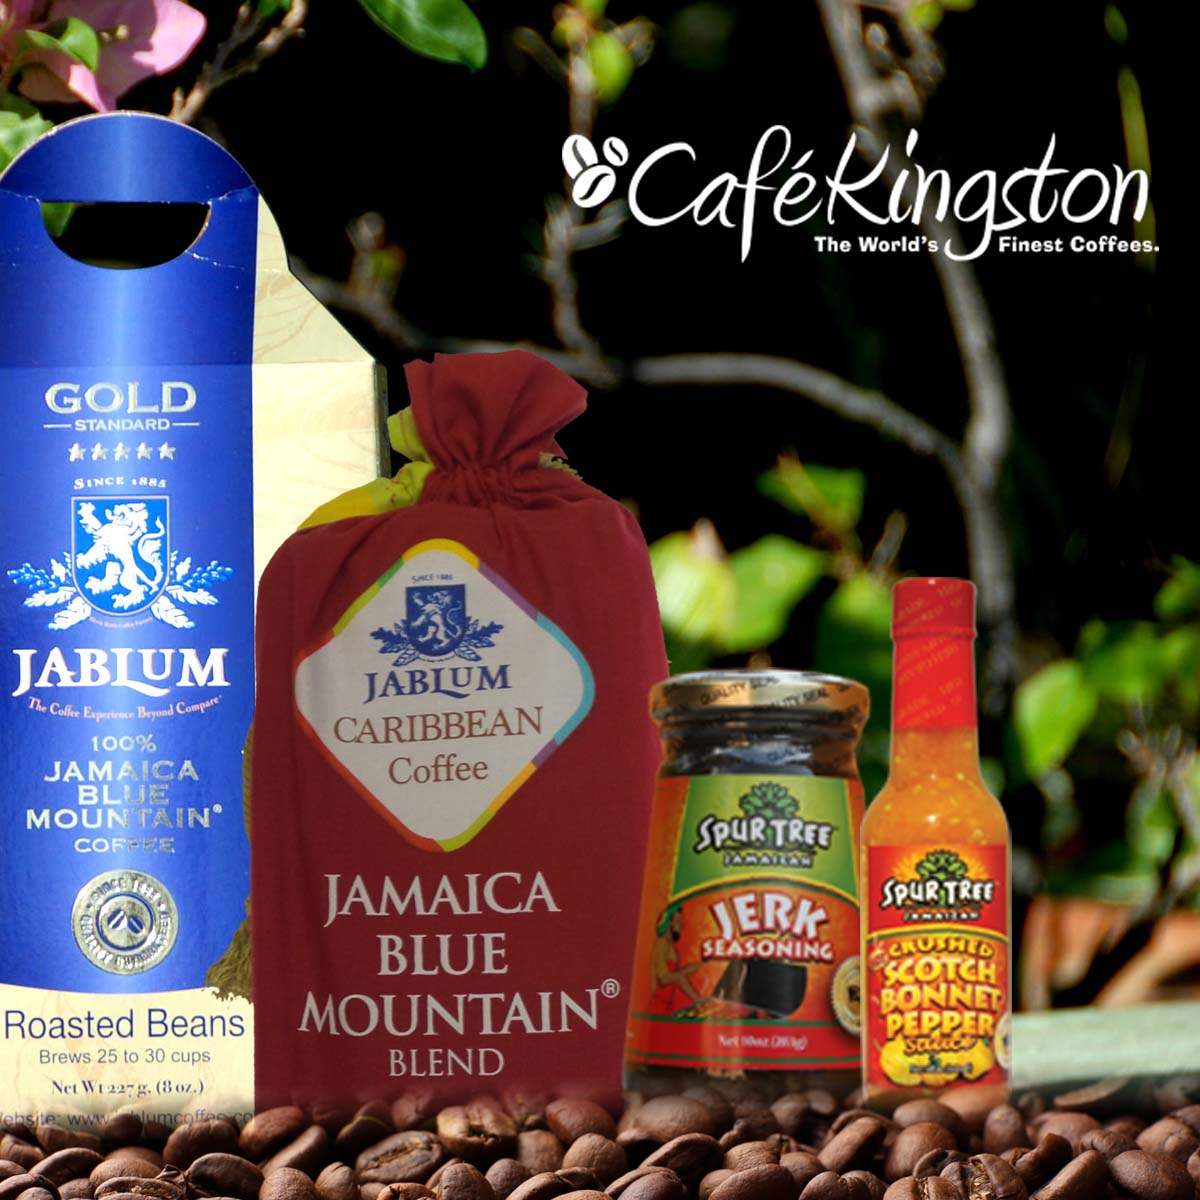 become a member of the Jamaica Coffee Club and get authentic jamaican blue mountain coffee every month. Delivered to your door!